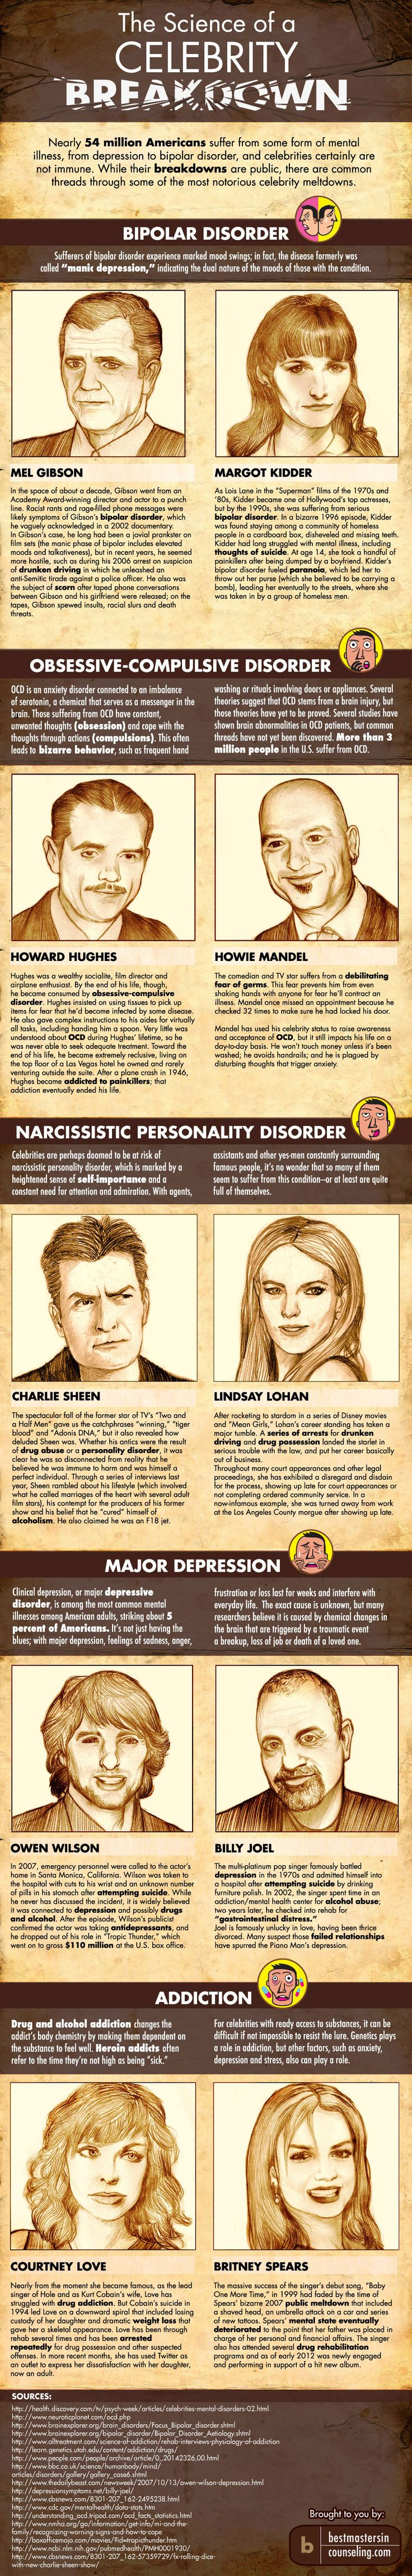 Scientific study of psychological disorders